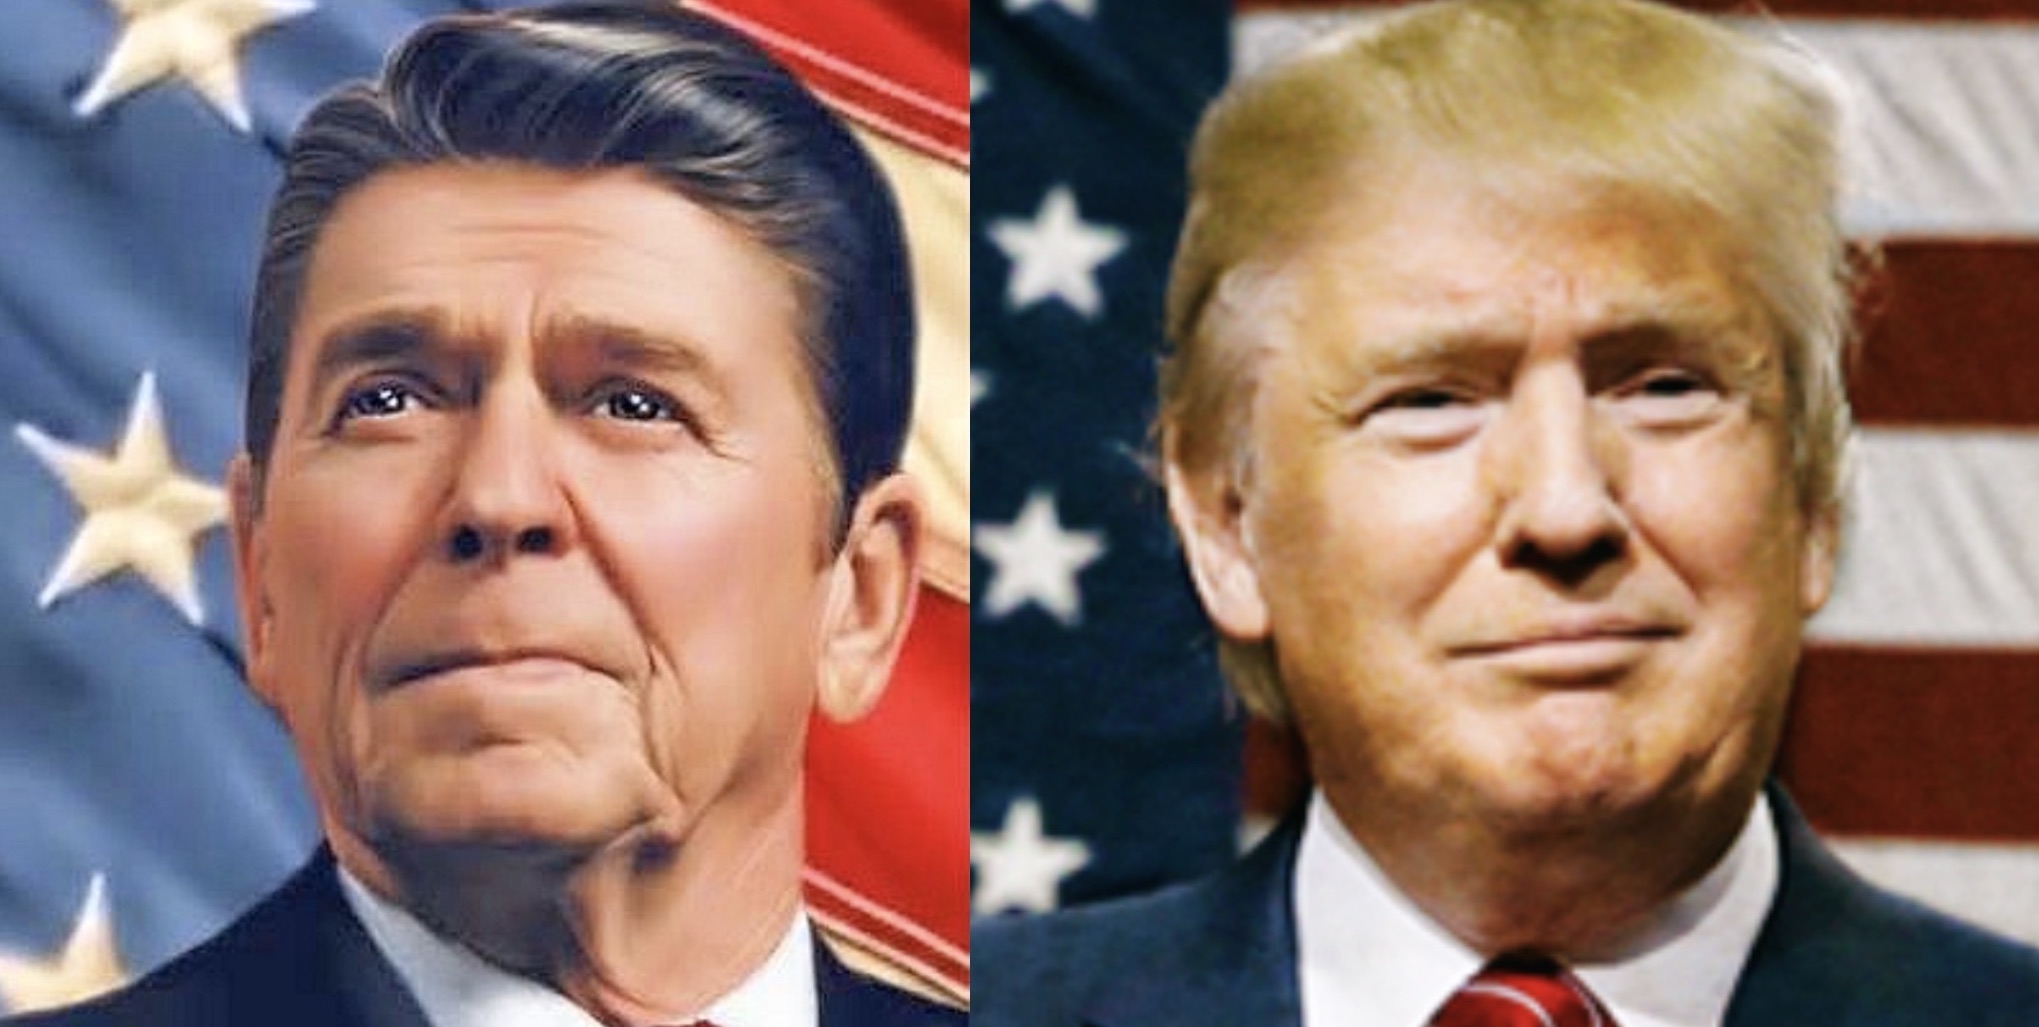 King World News - Look At The Shocking Difference Between When Ronald Reagan Took Office vs Donald Trump